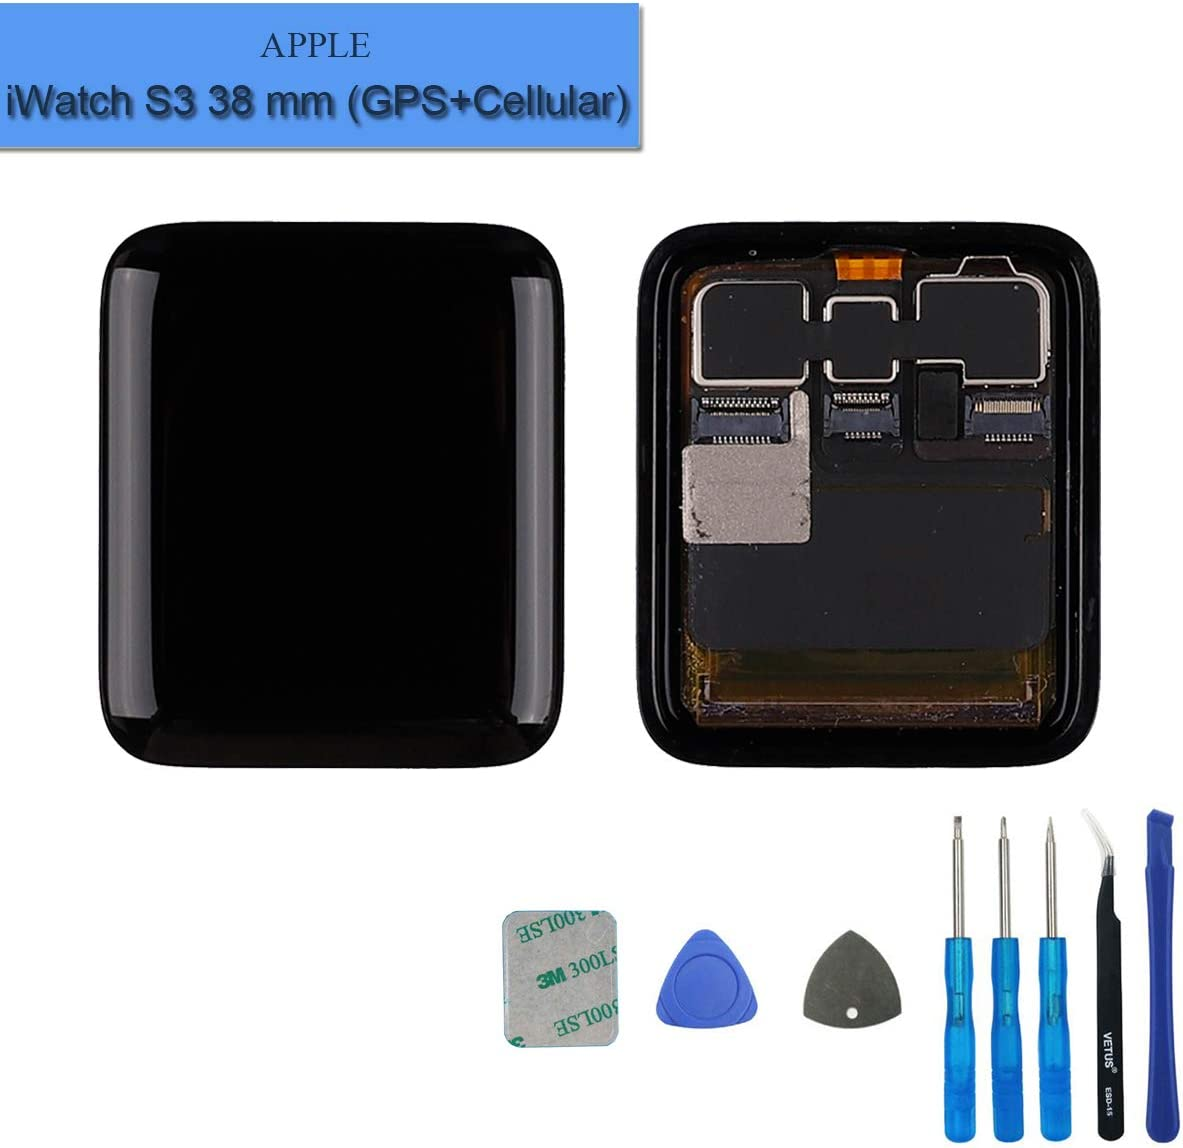 New Replacement LCD Screen Compatible with Apple Watch Series 3st 38mm (3nd Generation) GPS+Cellular LCD Touch Screen Display Assembly with Tools